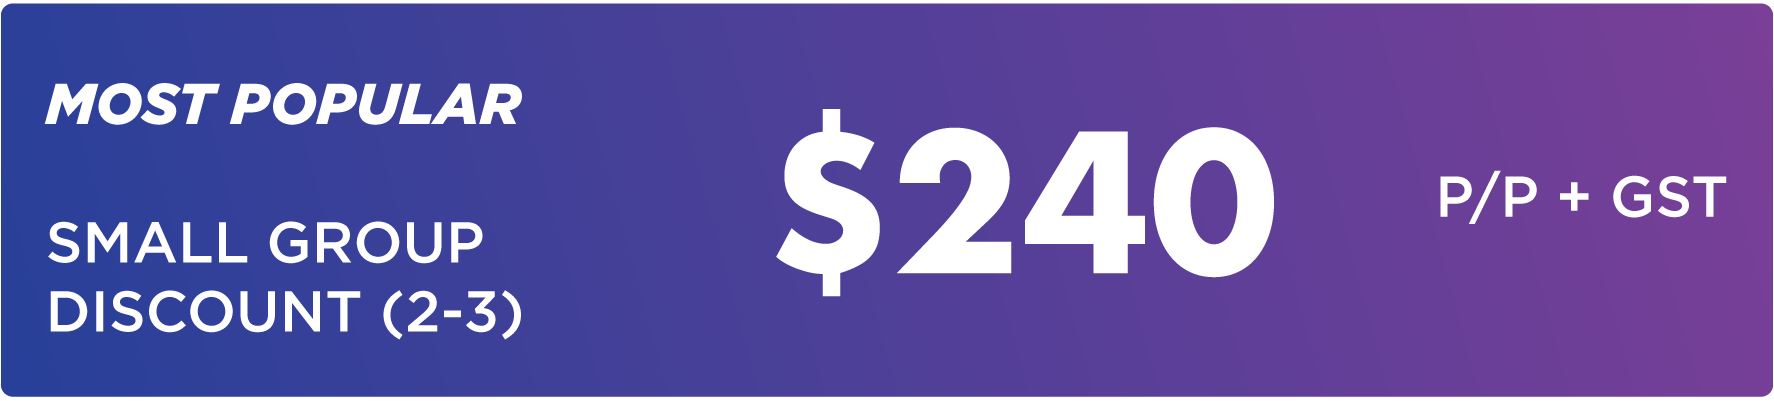 pricing-03.png